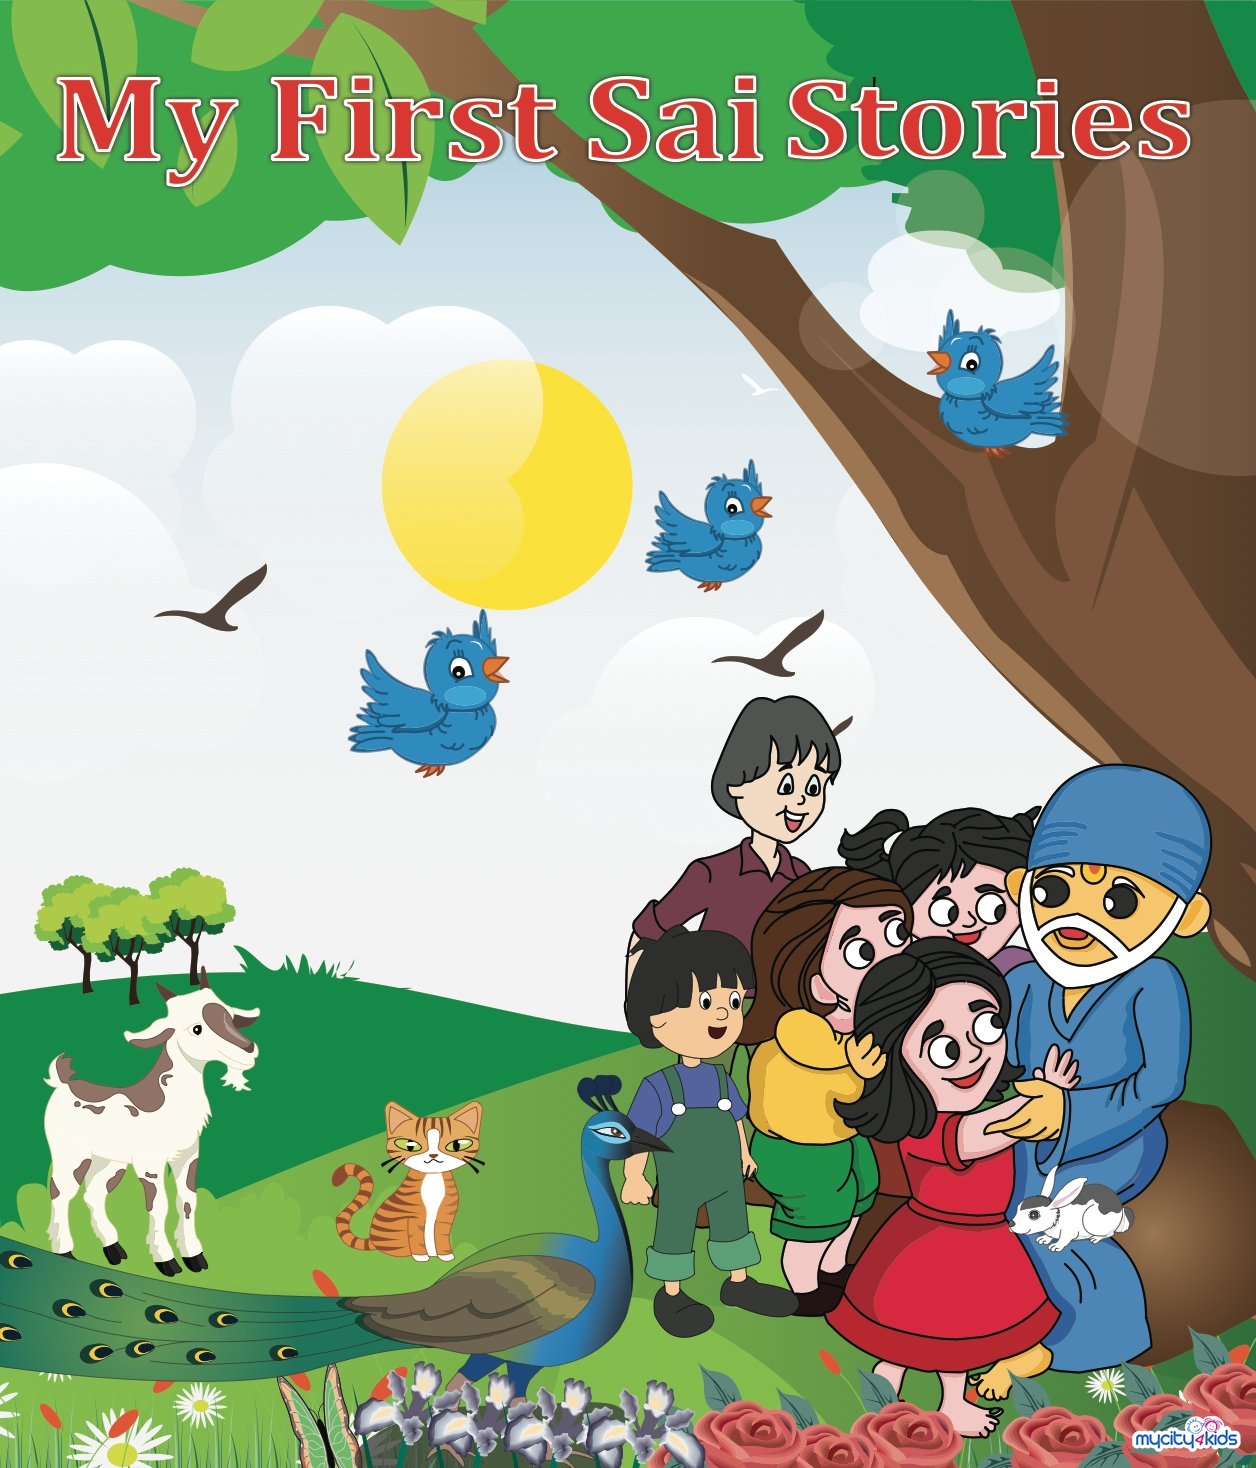 My First Sai Stories